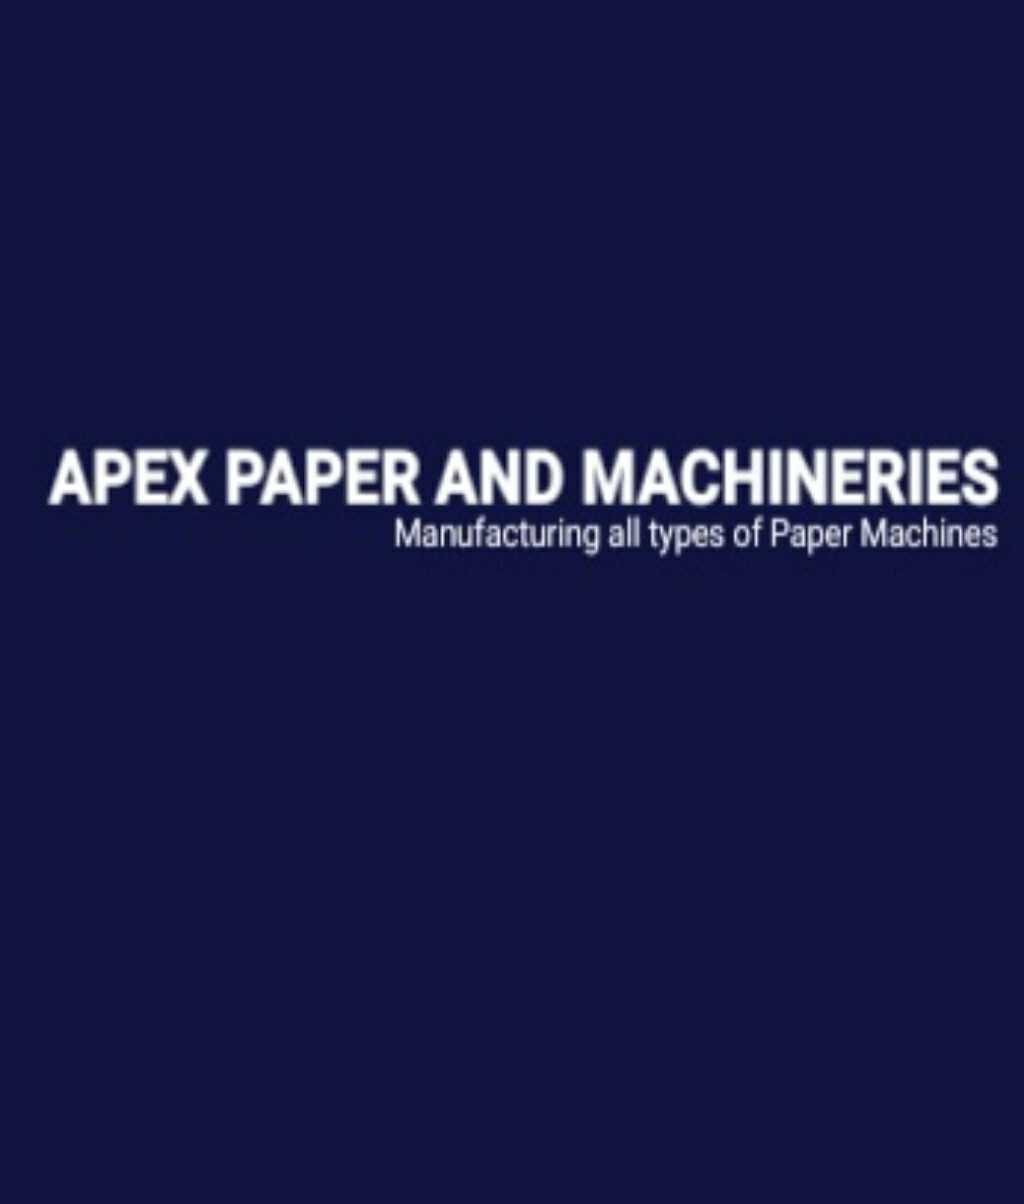 APEX PAPER AND MACHINERIES